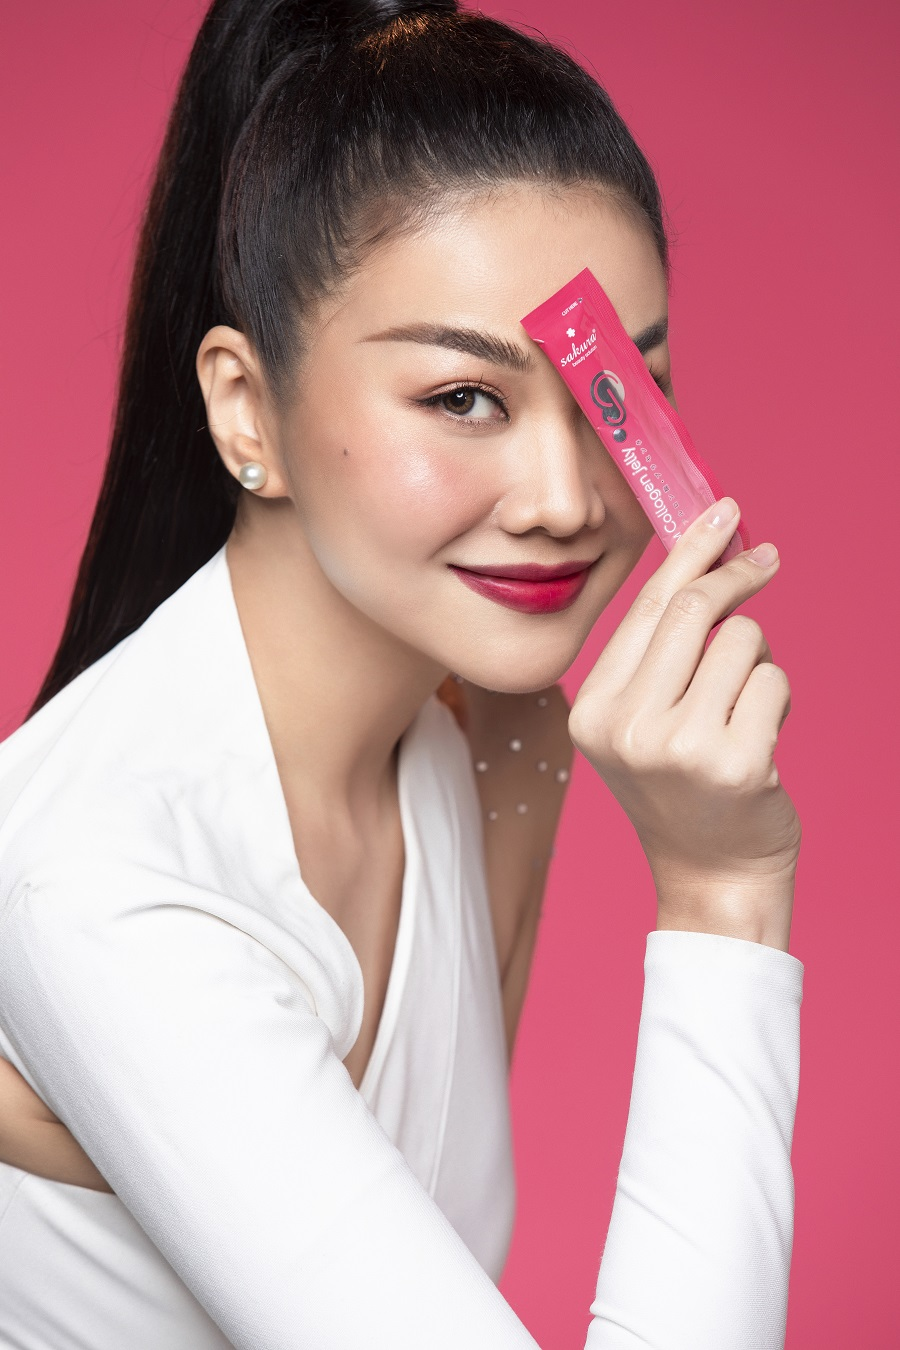 Thanh Hằng Collagen Jelly